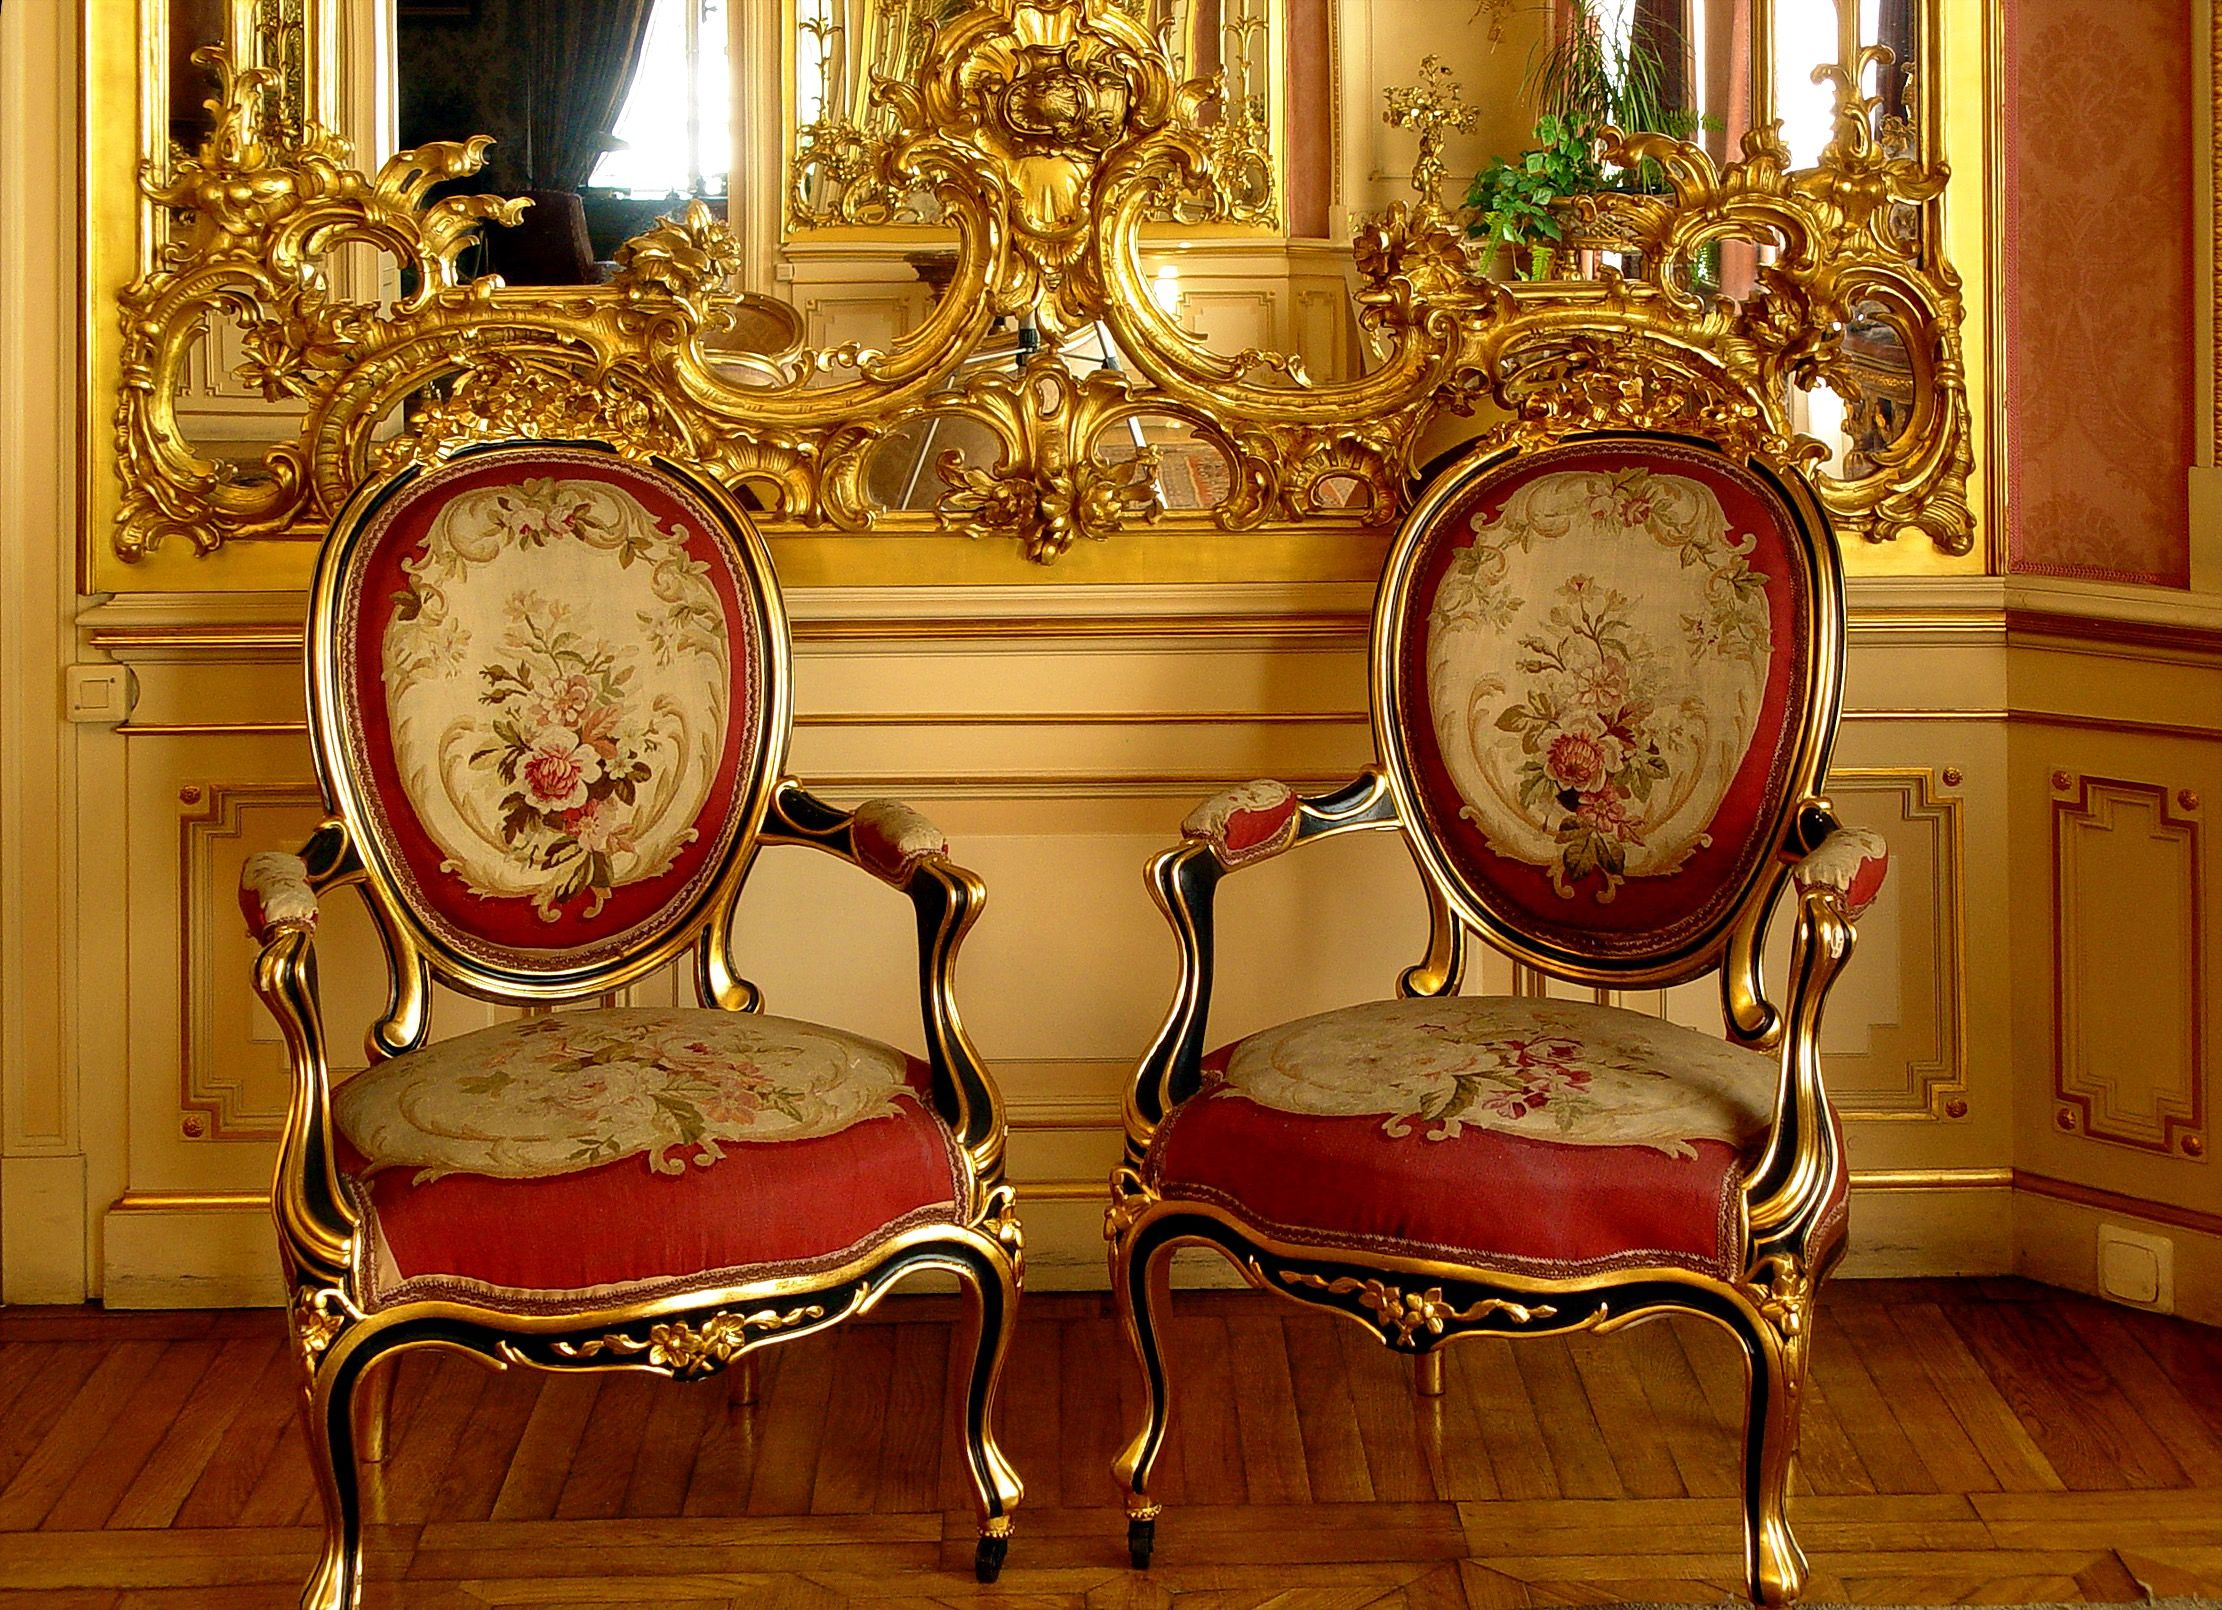 Surprising Vintage Baroque Decor Frame Vector Ornate Diy Room Modern Furniture Decorative Style Crossword Baroque Furniture Antique Chairs Antique Chair Styles